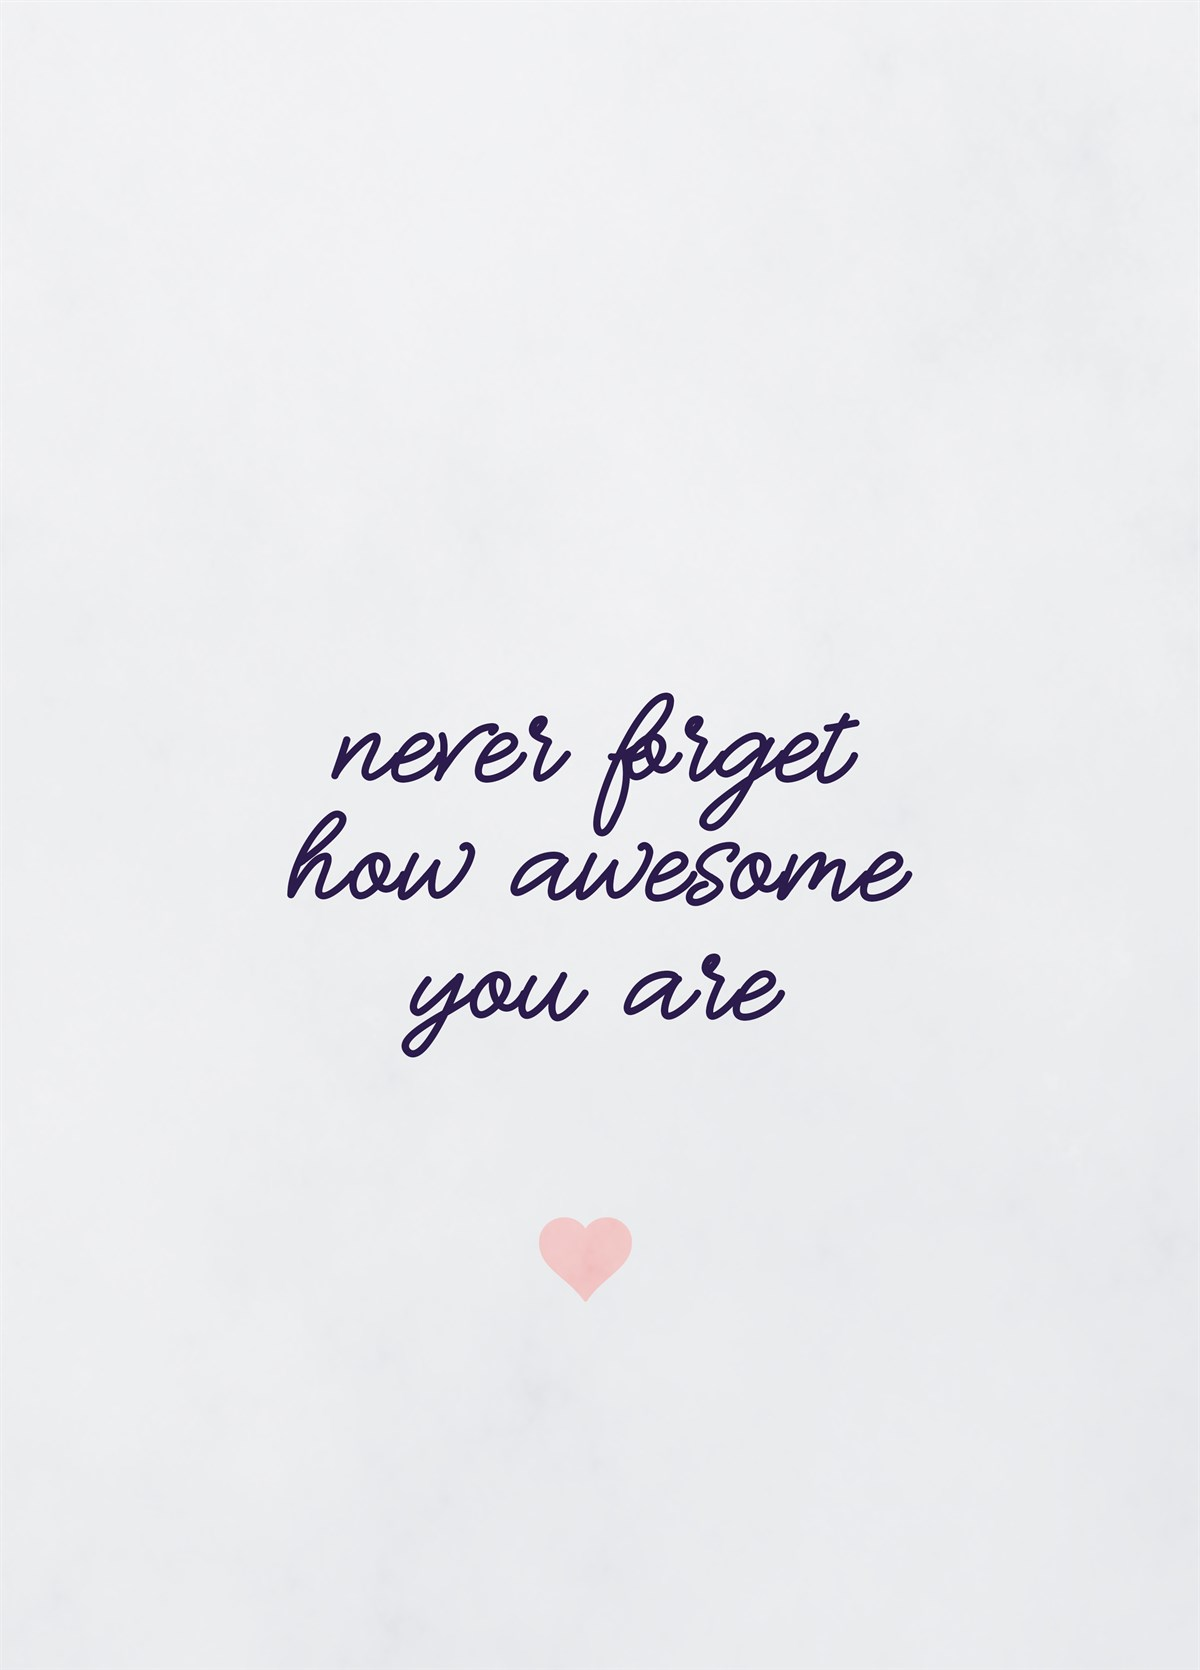 Image result for never forget how special you are images